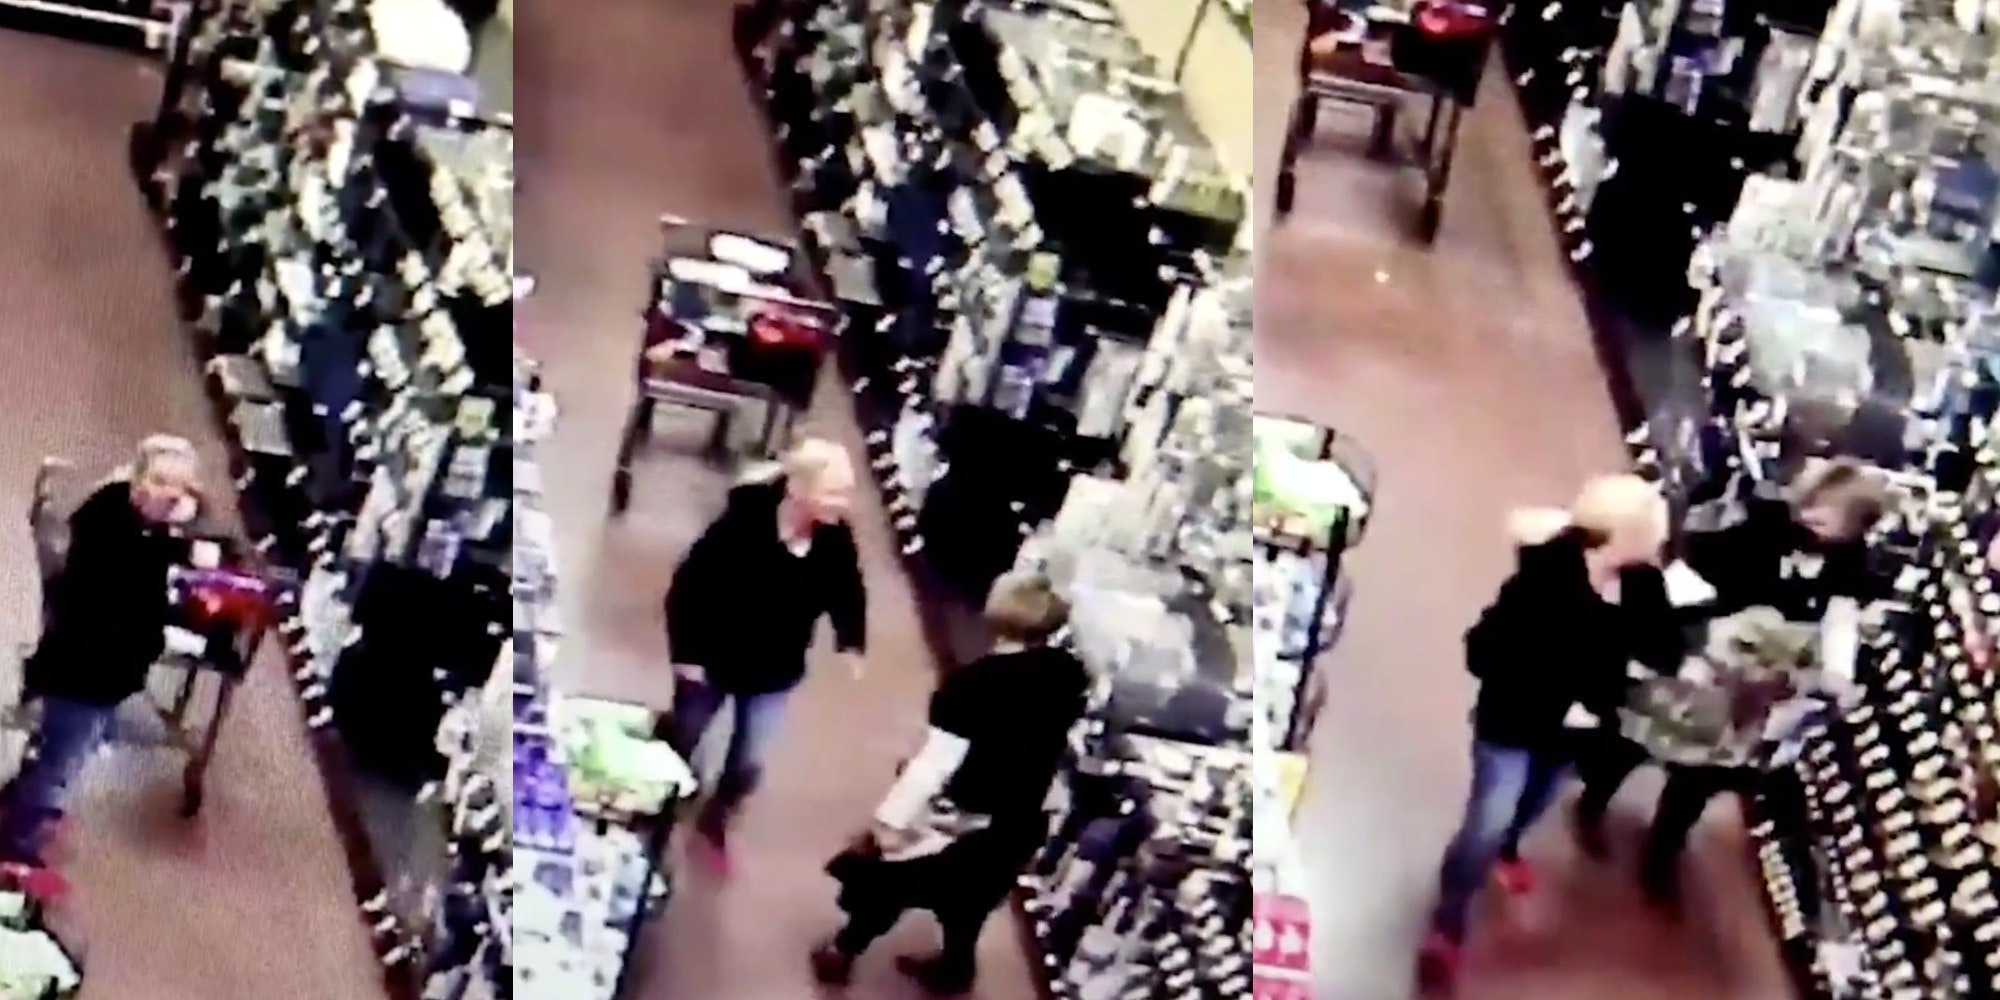 Colorado woman slaps grocery store worker over mask dispute